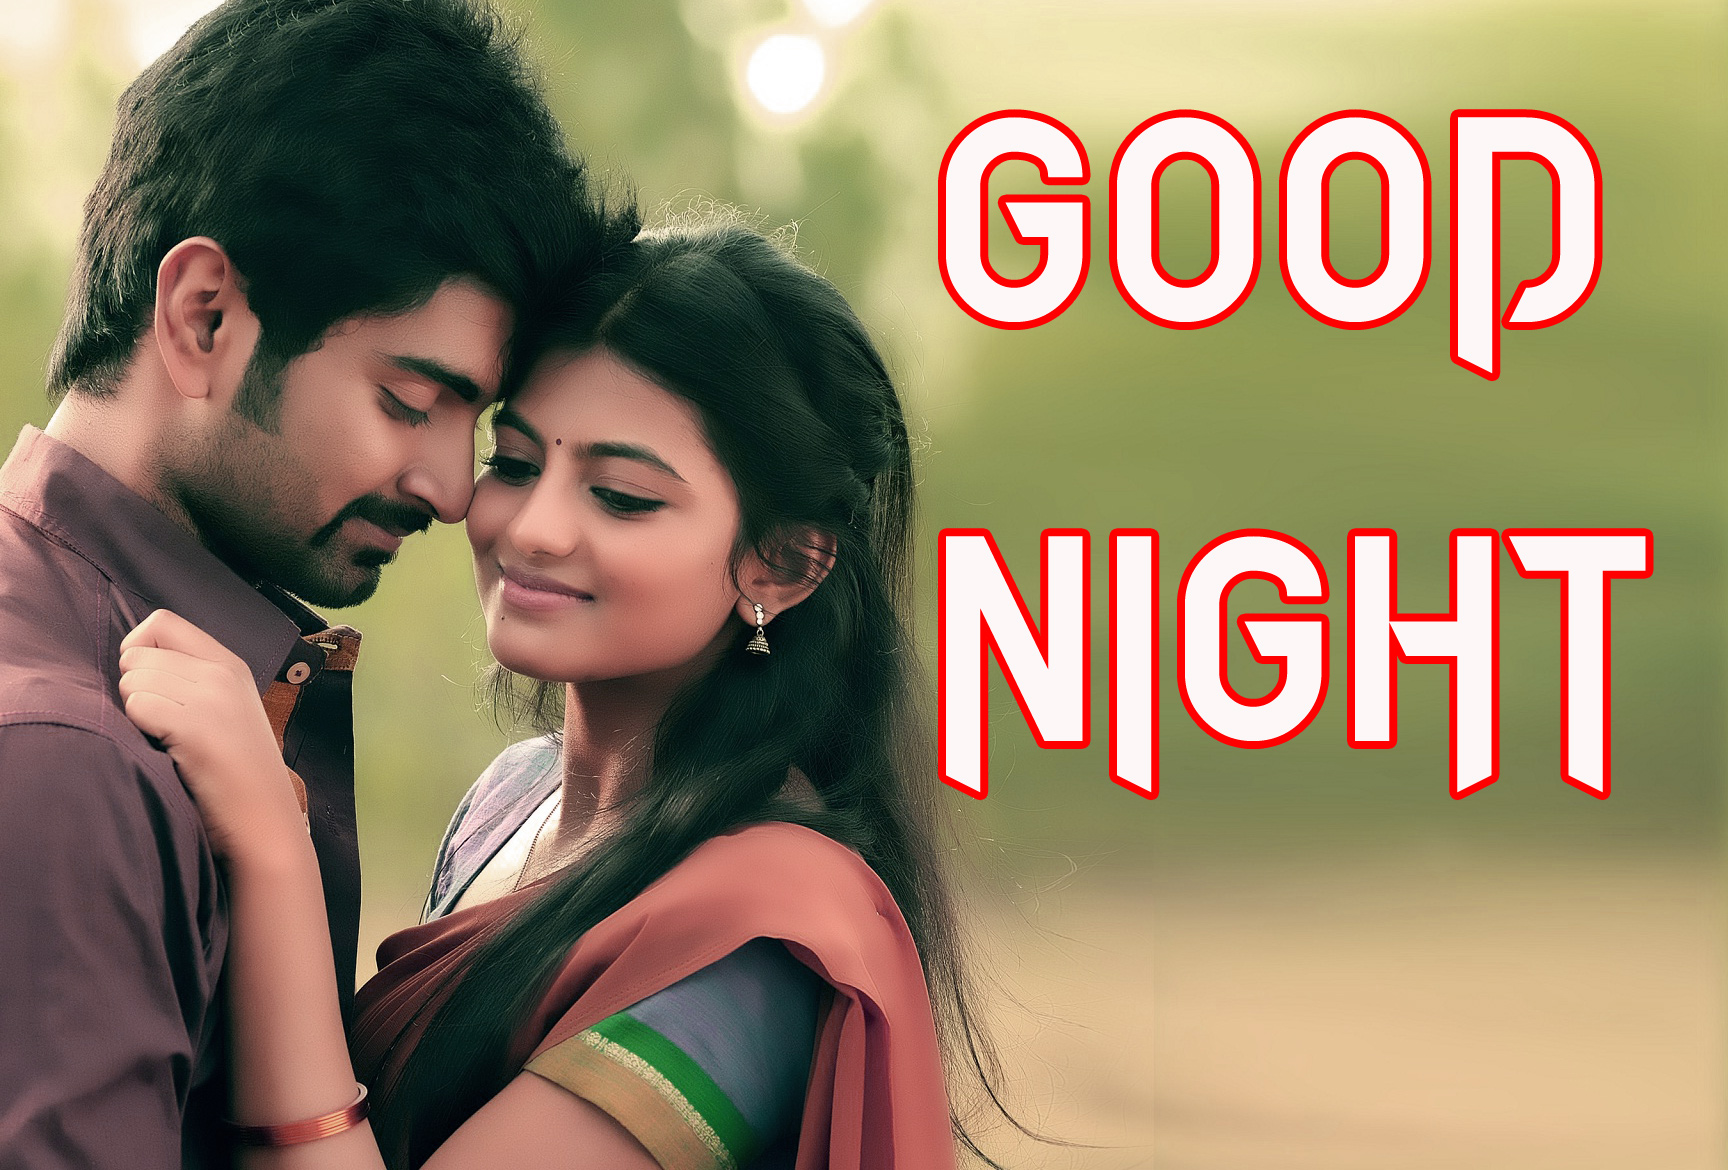 CUTE LOVE  GOOD NIGHT  IMAGES PHOTO PICS FREE DOWNLOAD